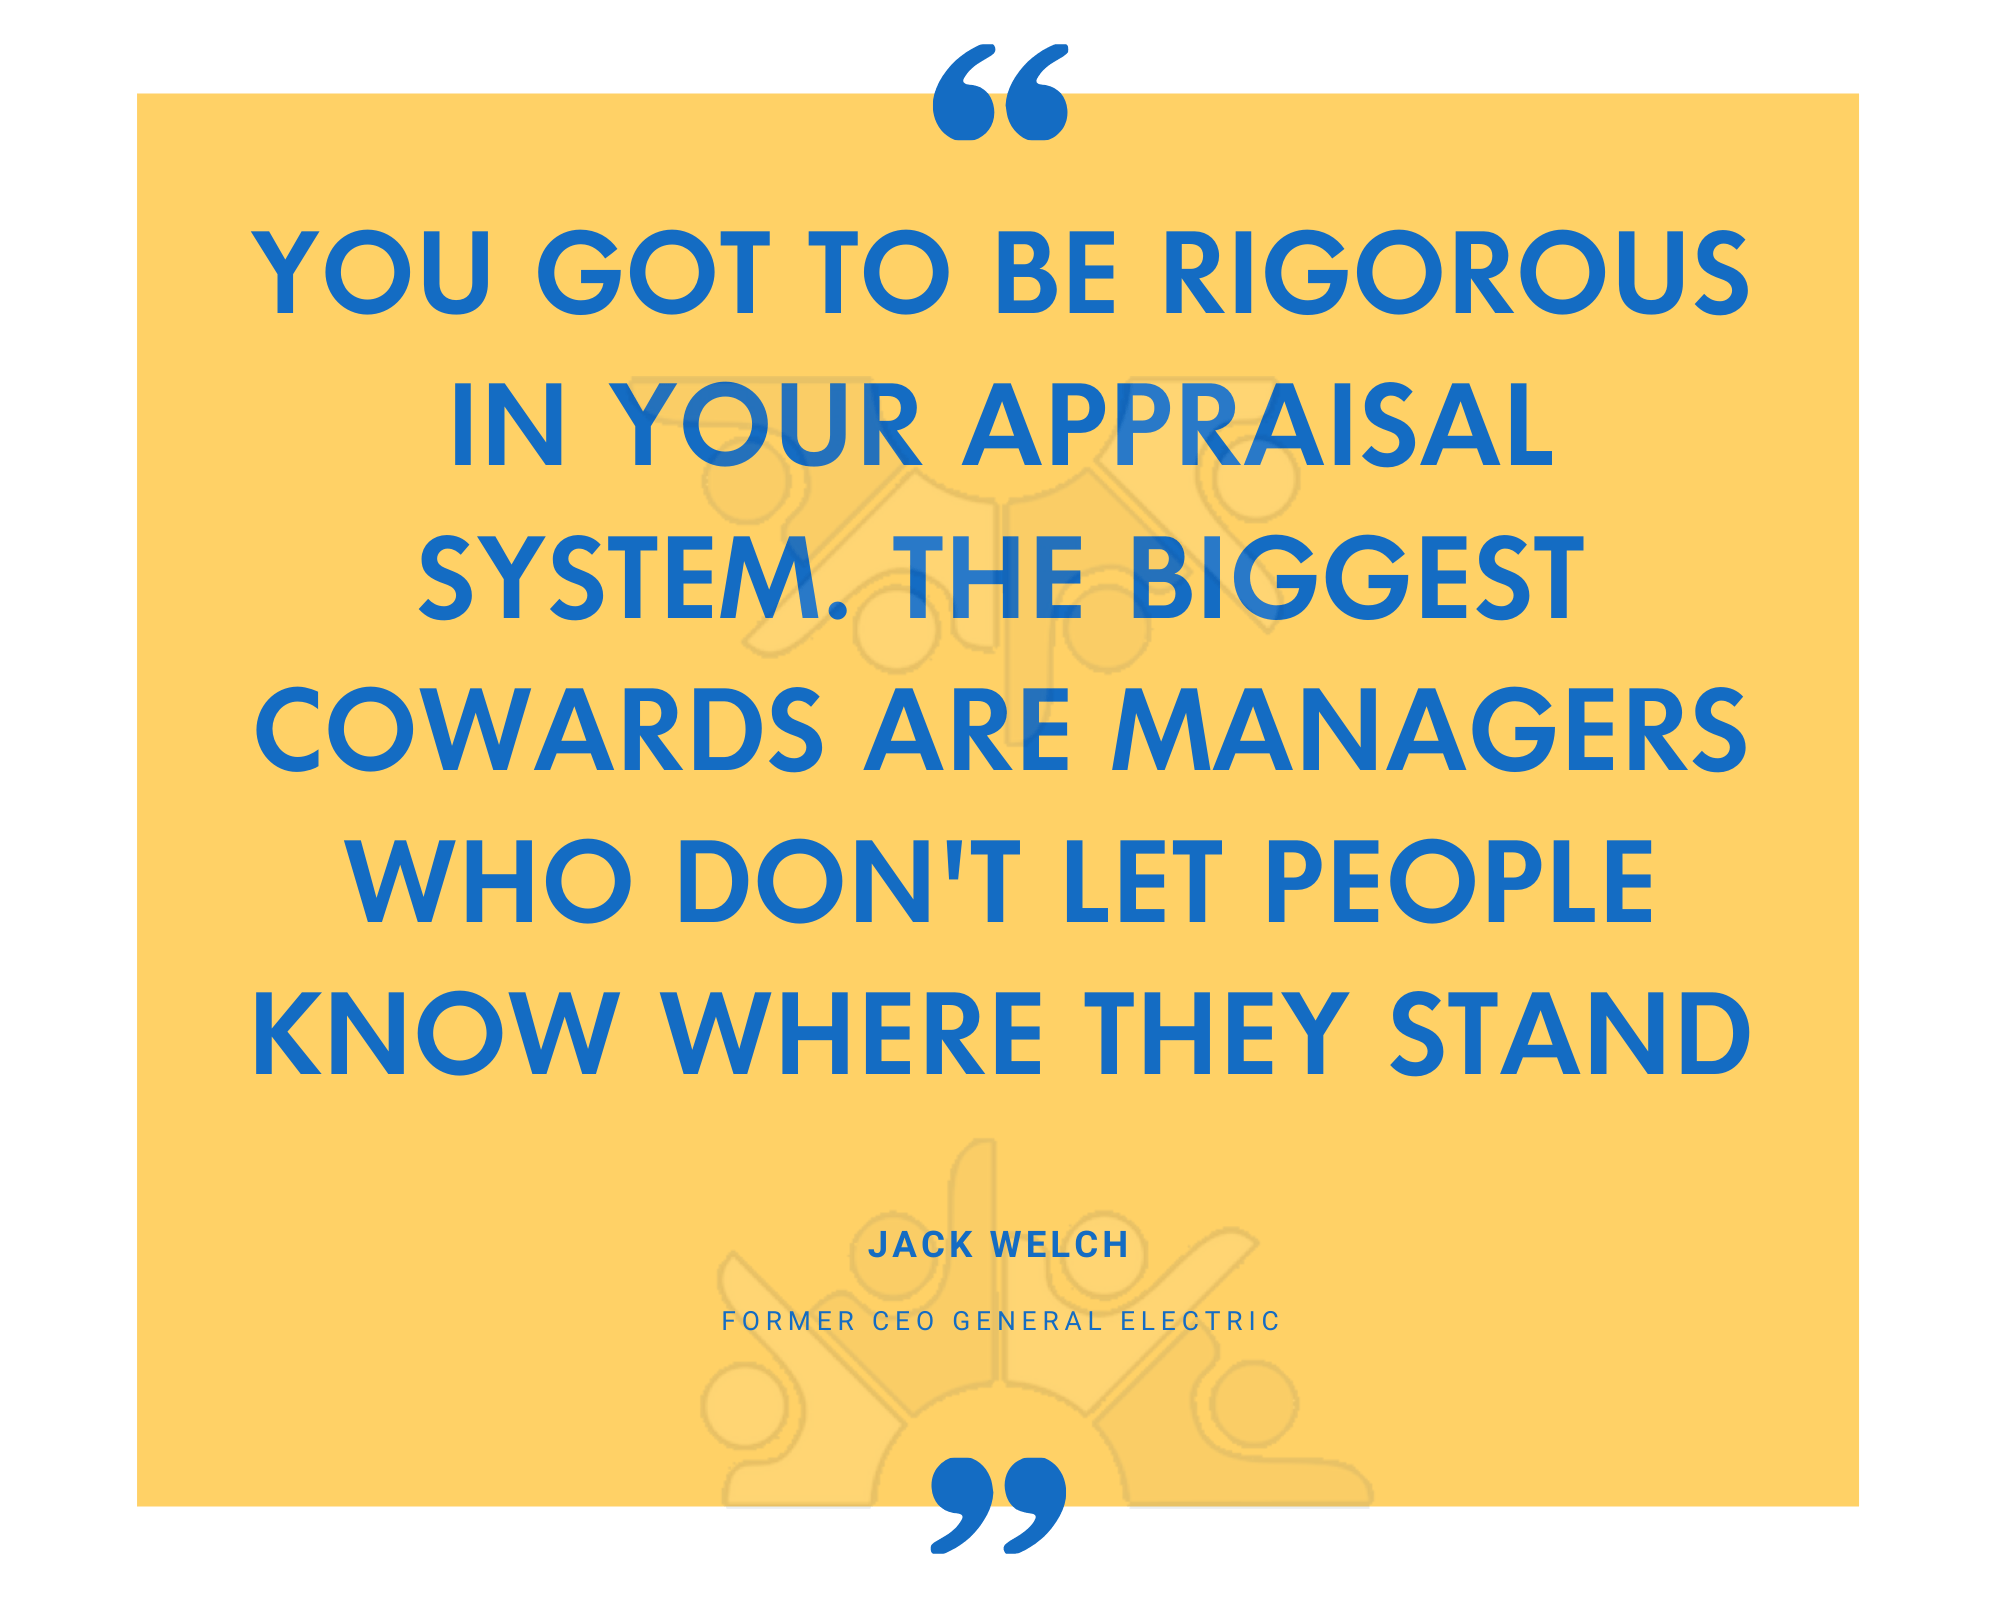 You got to be rigorous in your appraisal system. The biggest cowards are managers who dont let people know where they stand-1